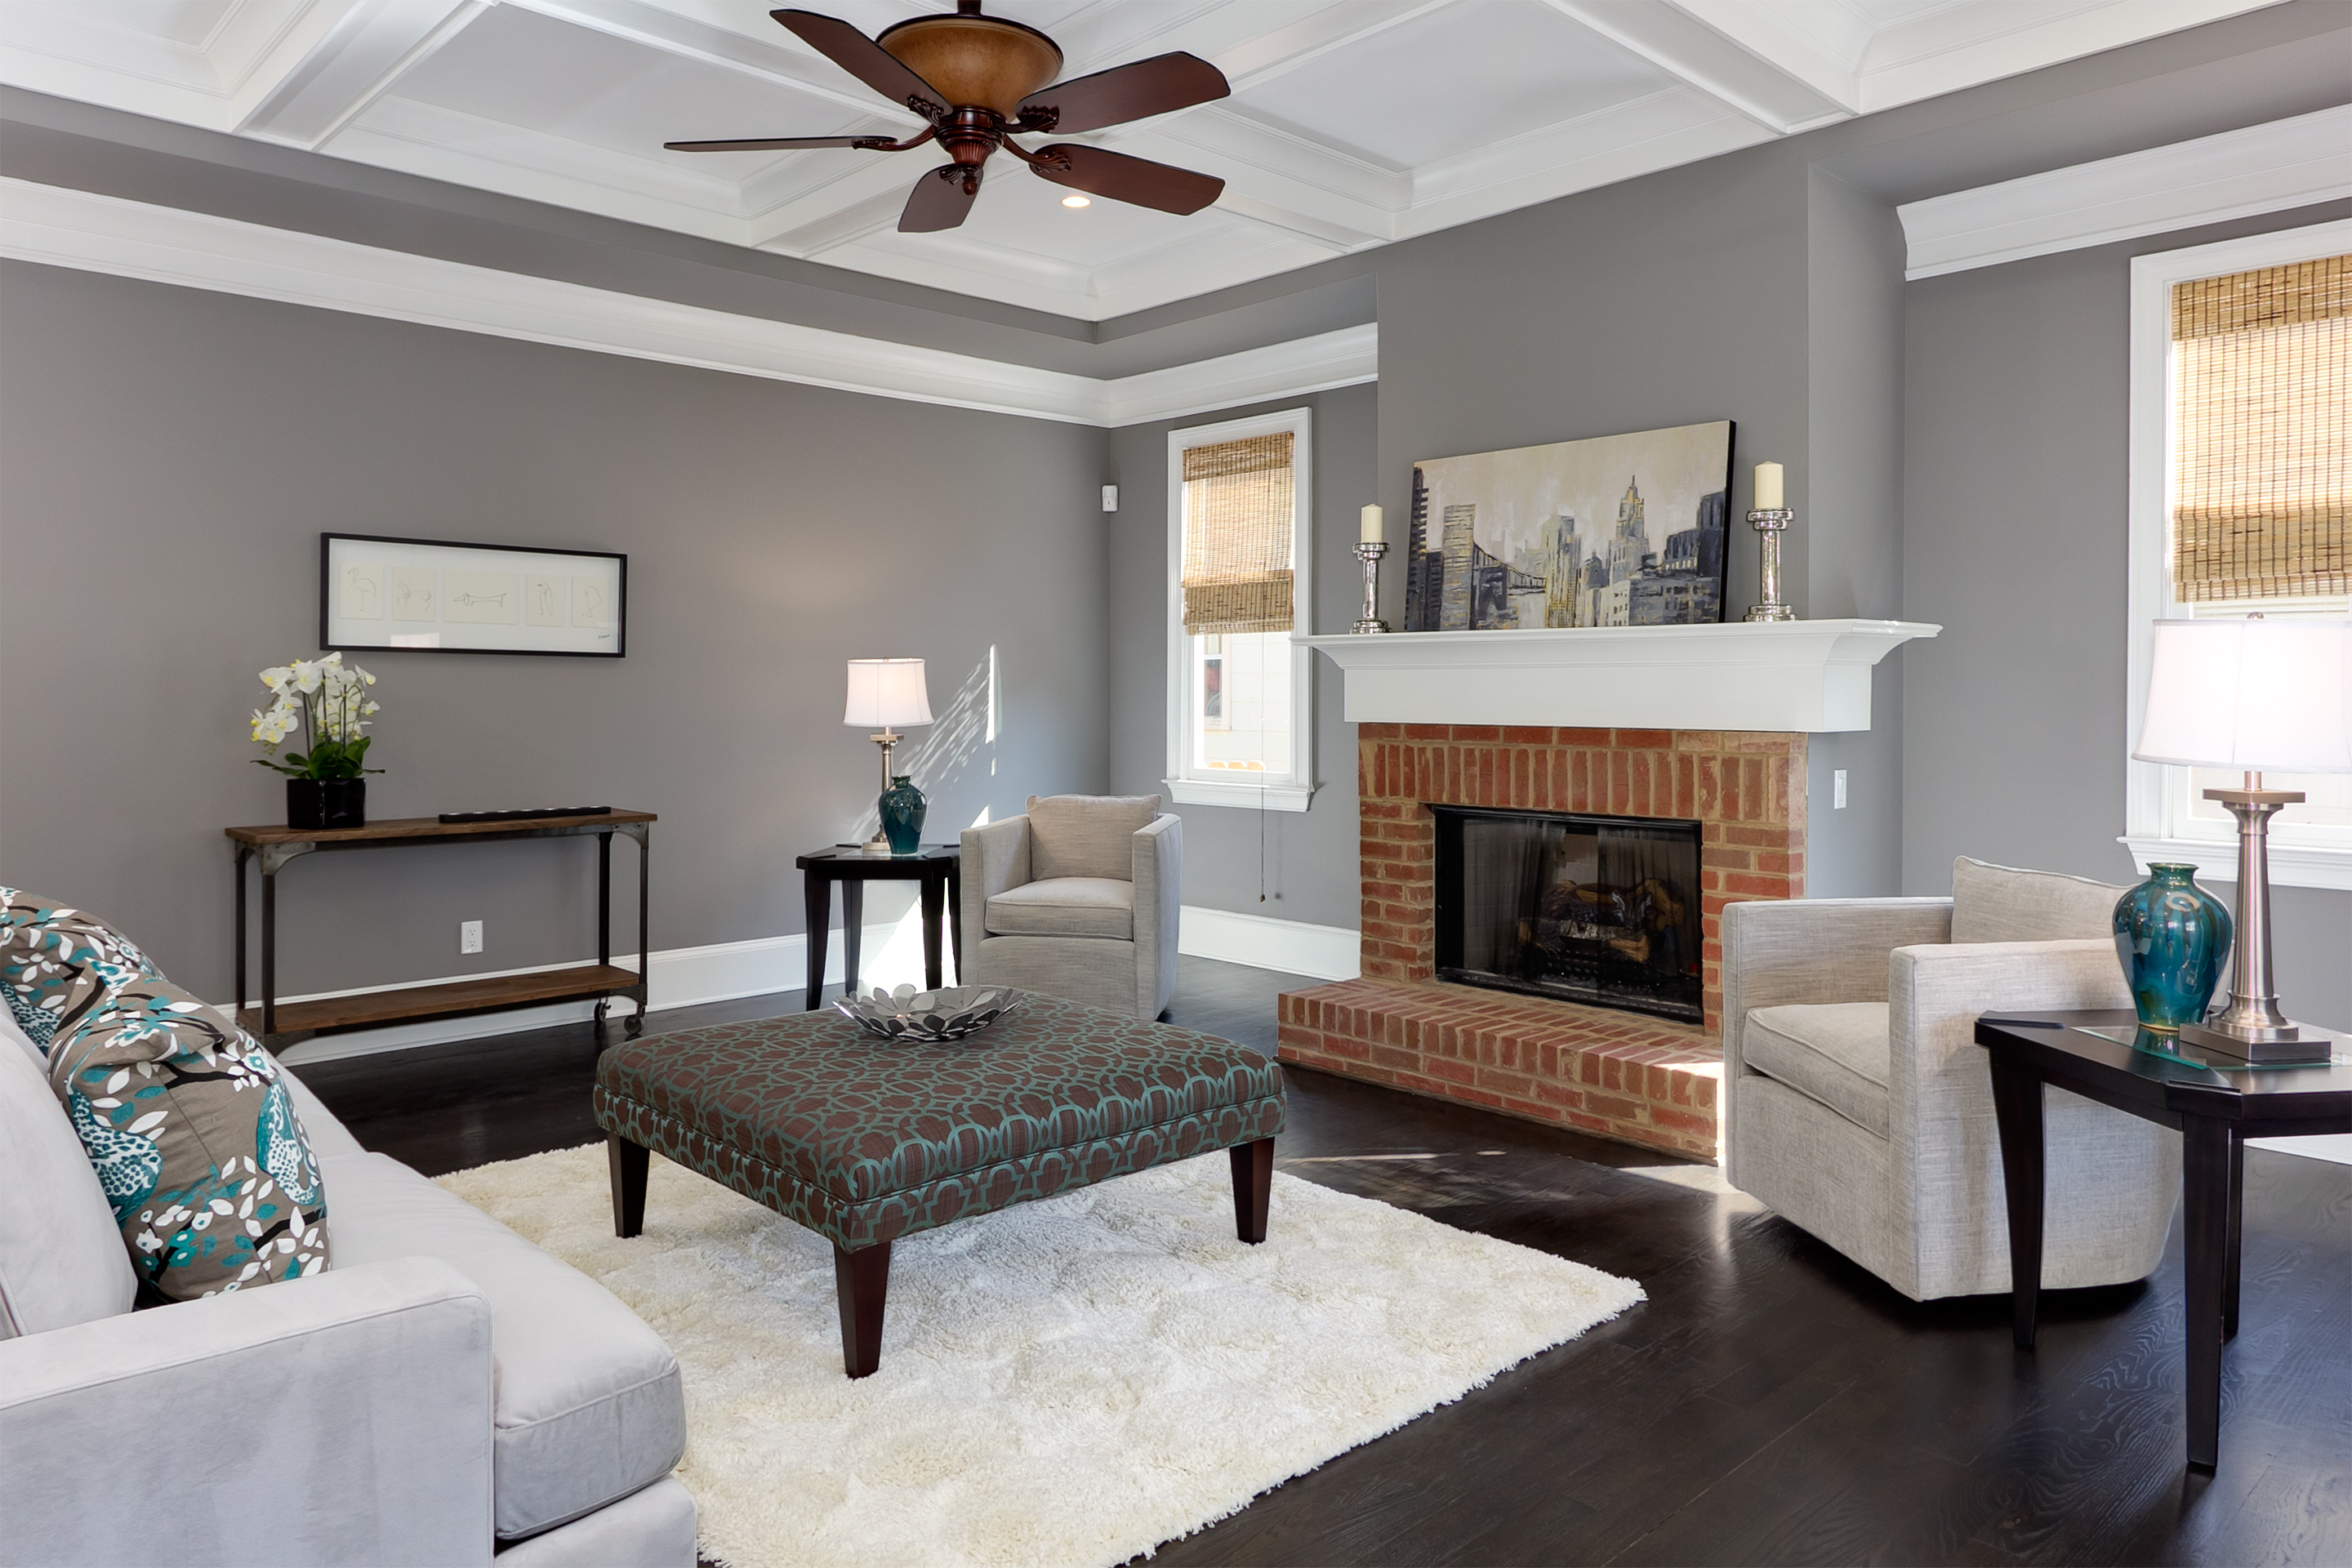 Blog atlanta real estate photographer iran watson photo - Decoration salon blanc et gris ...